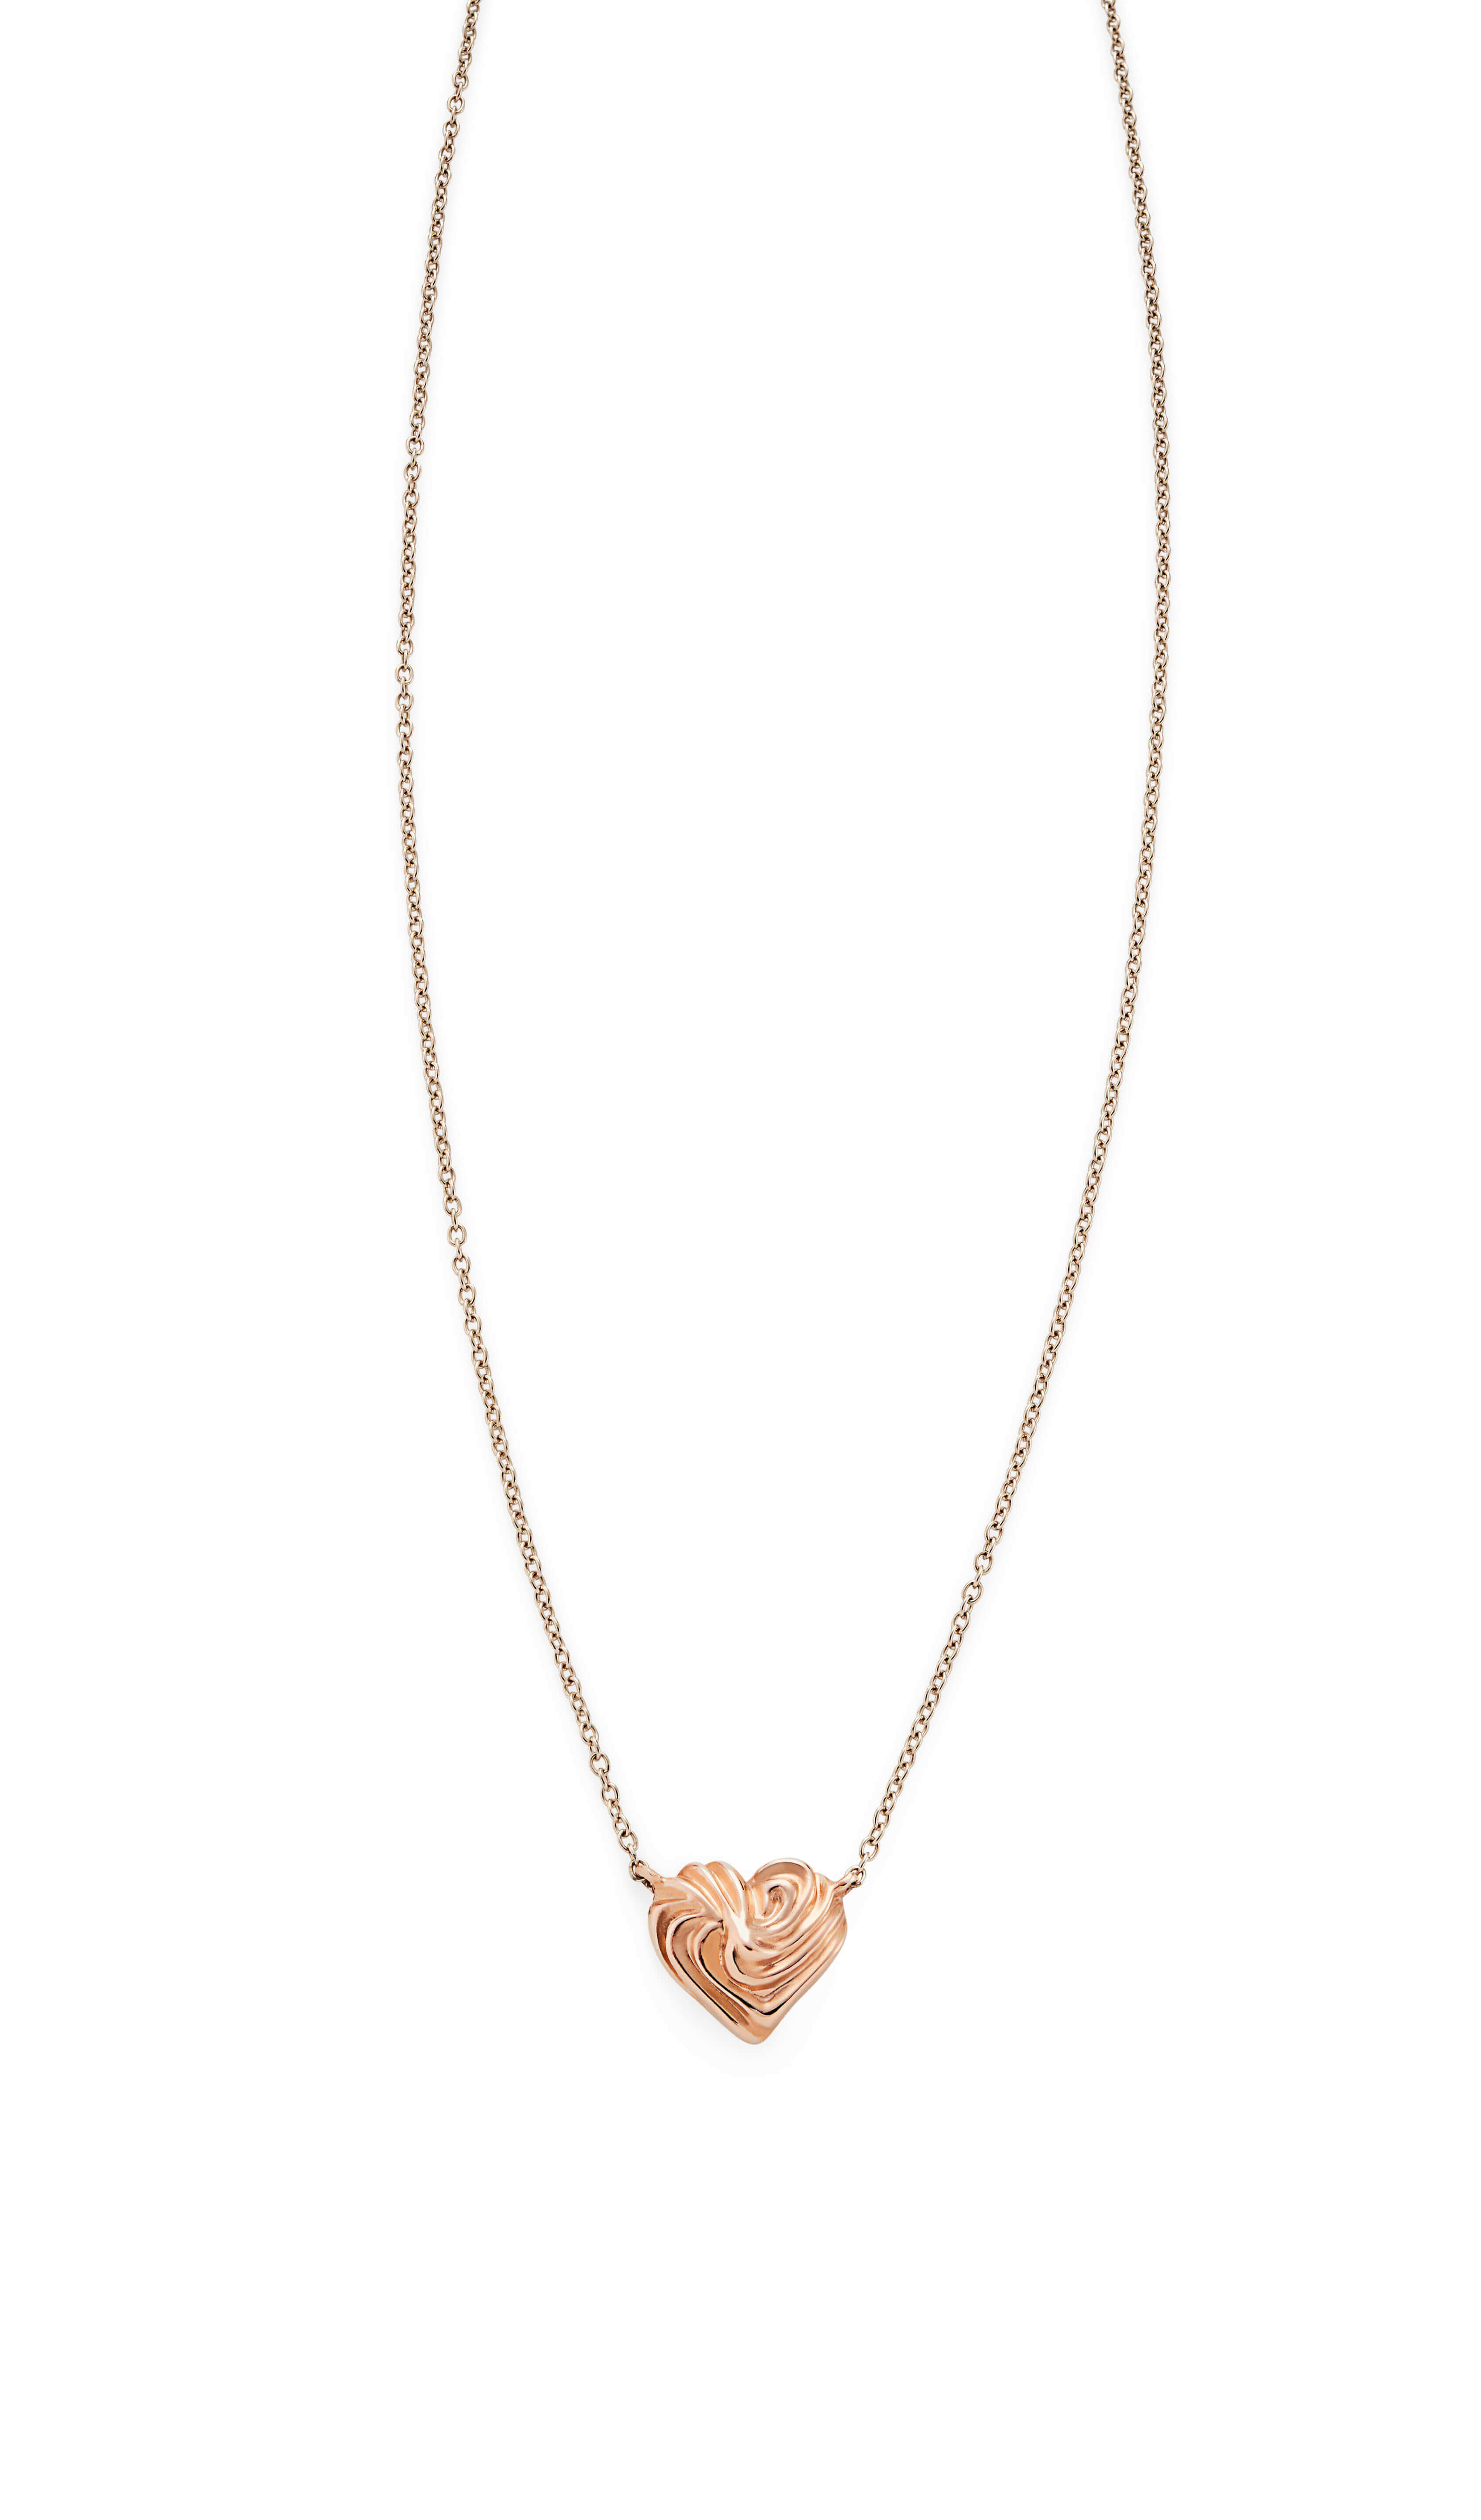 MyCollection_H.Stern_-_necklace_in_18K_rose_gold(PE0OV_209336)